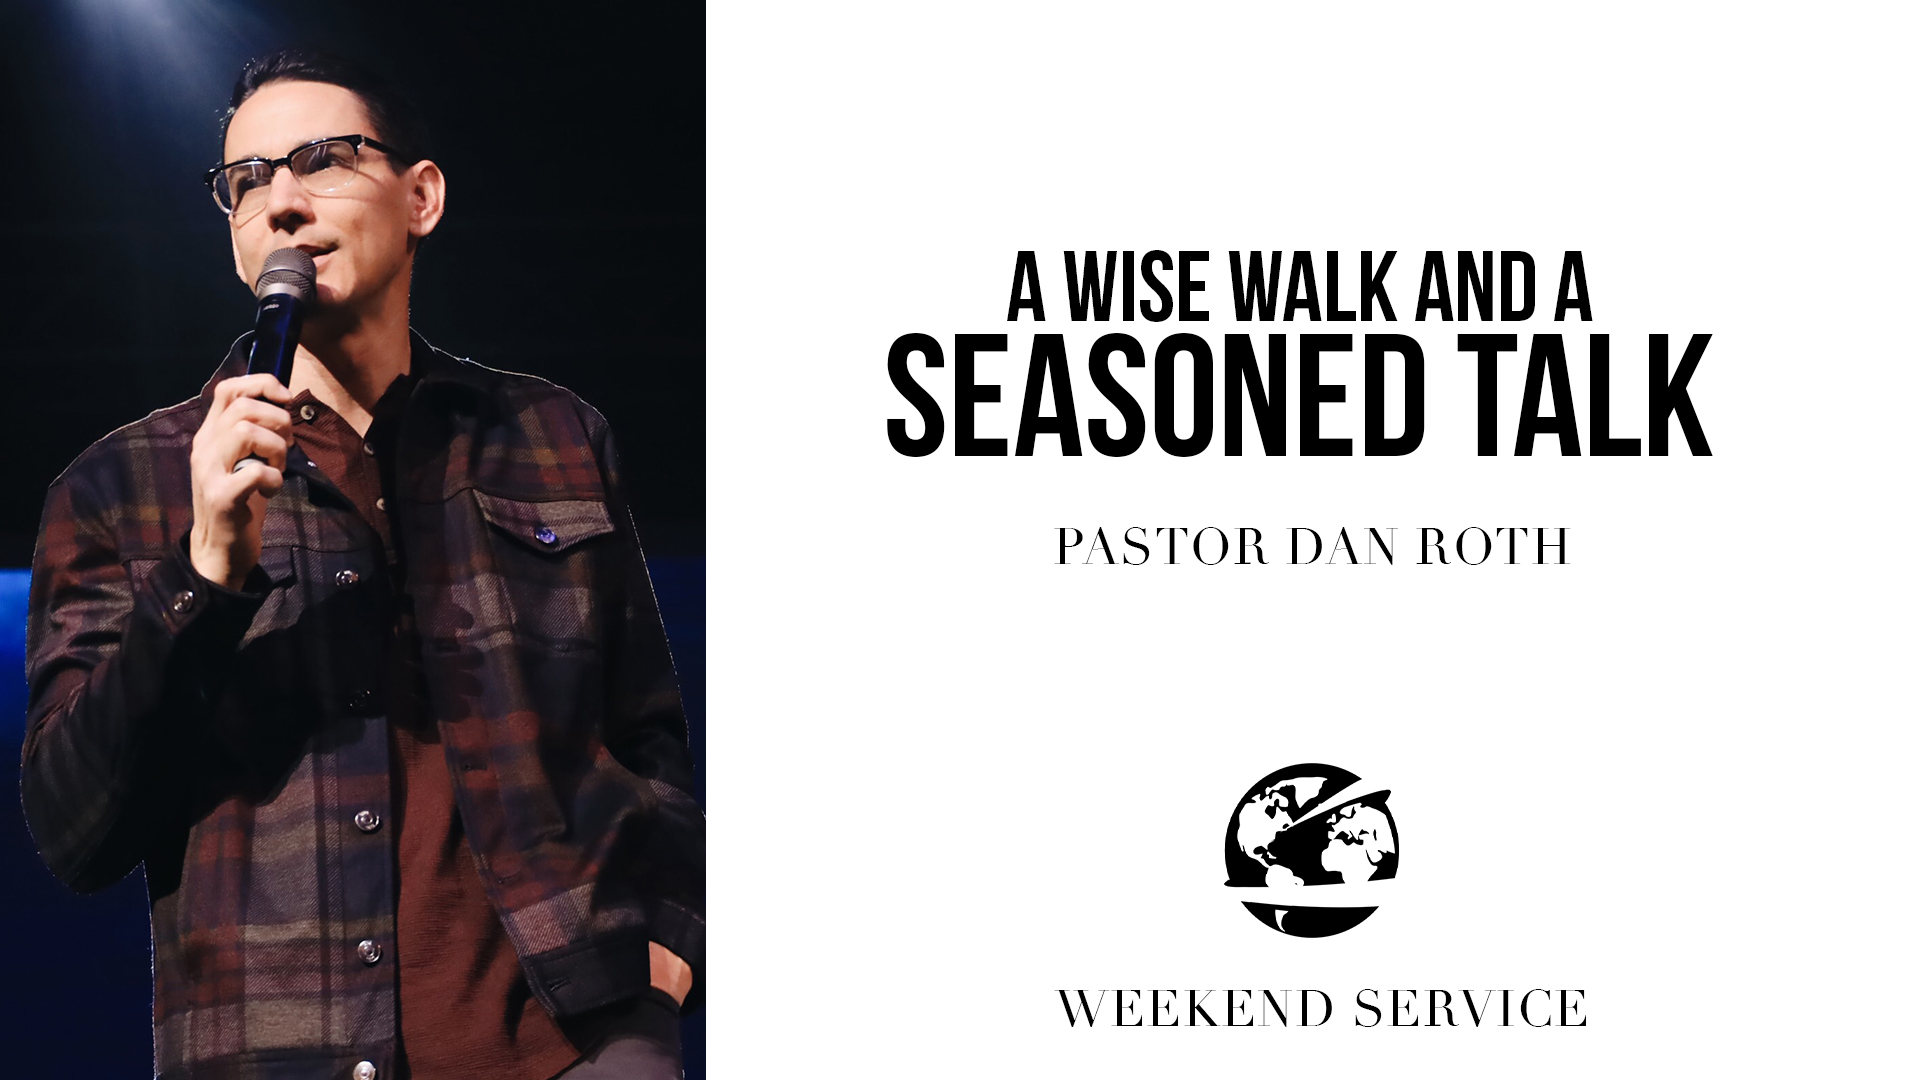 Watch A Wise Walk and a Seasoned Talk Part 2